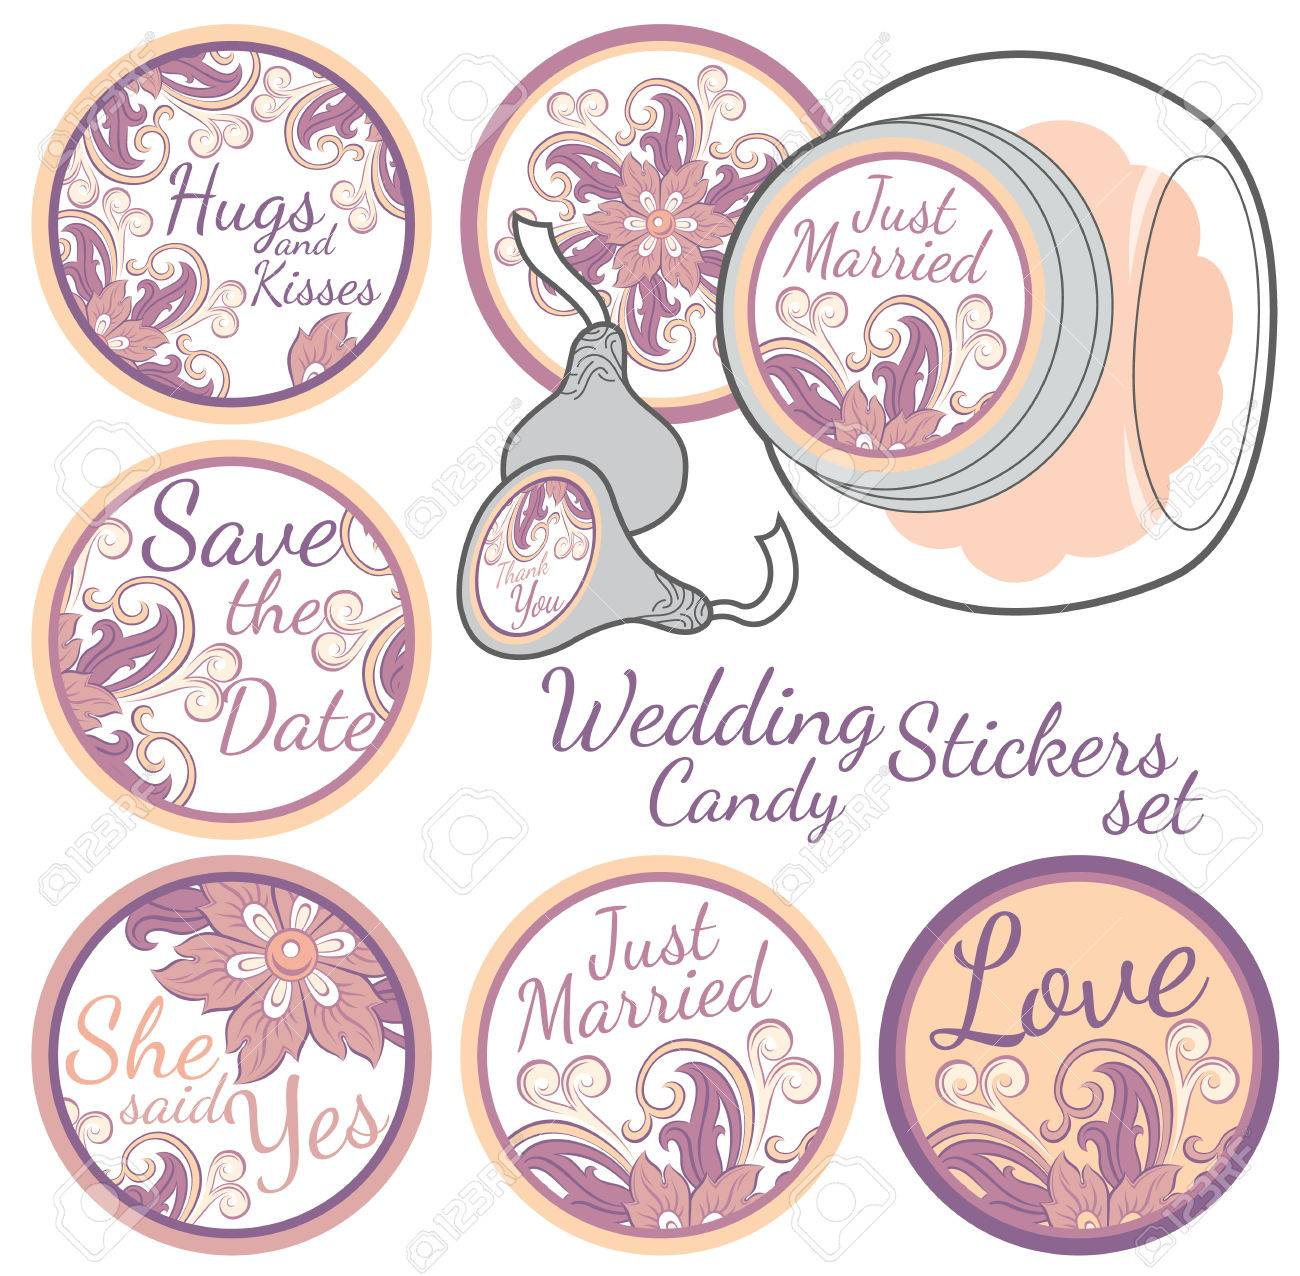 Personalized Candy Sticker Labels With Decorative Floers Set ...